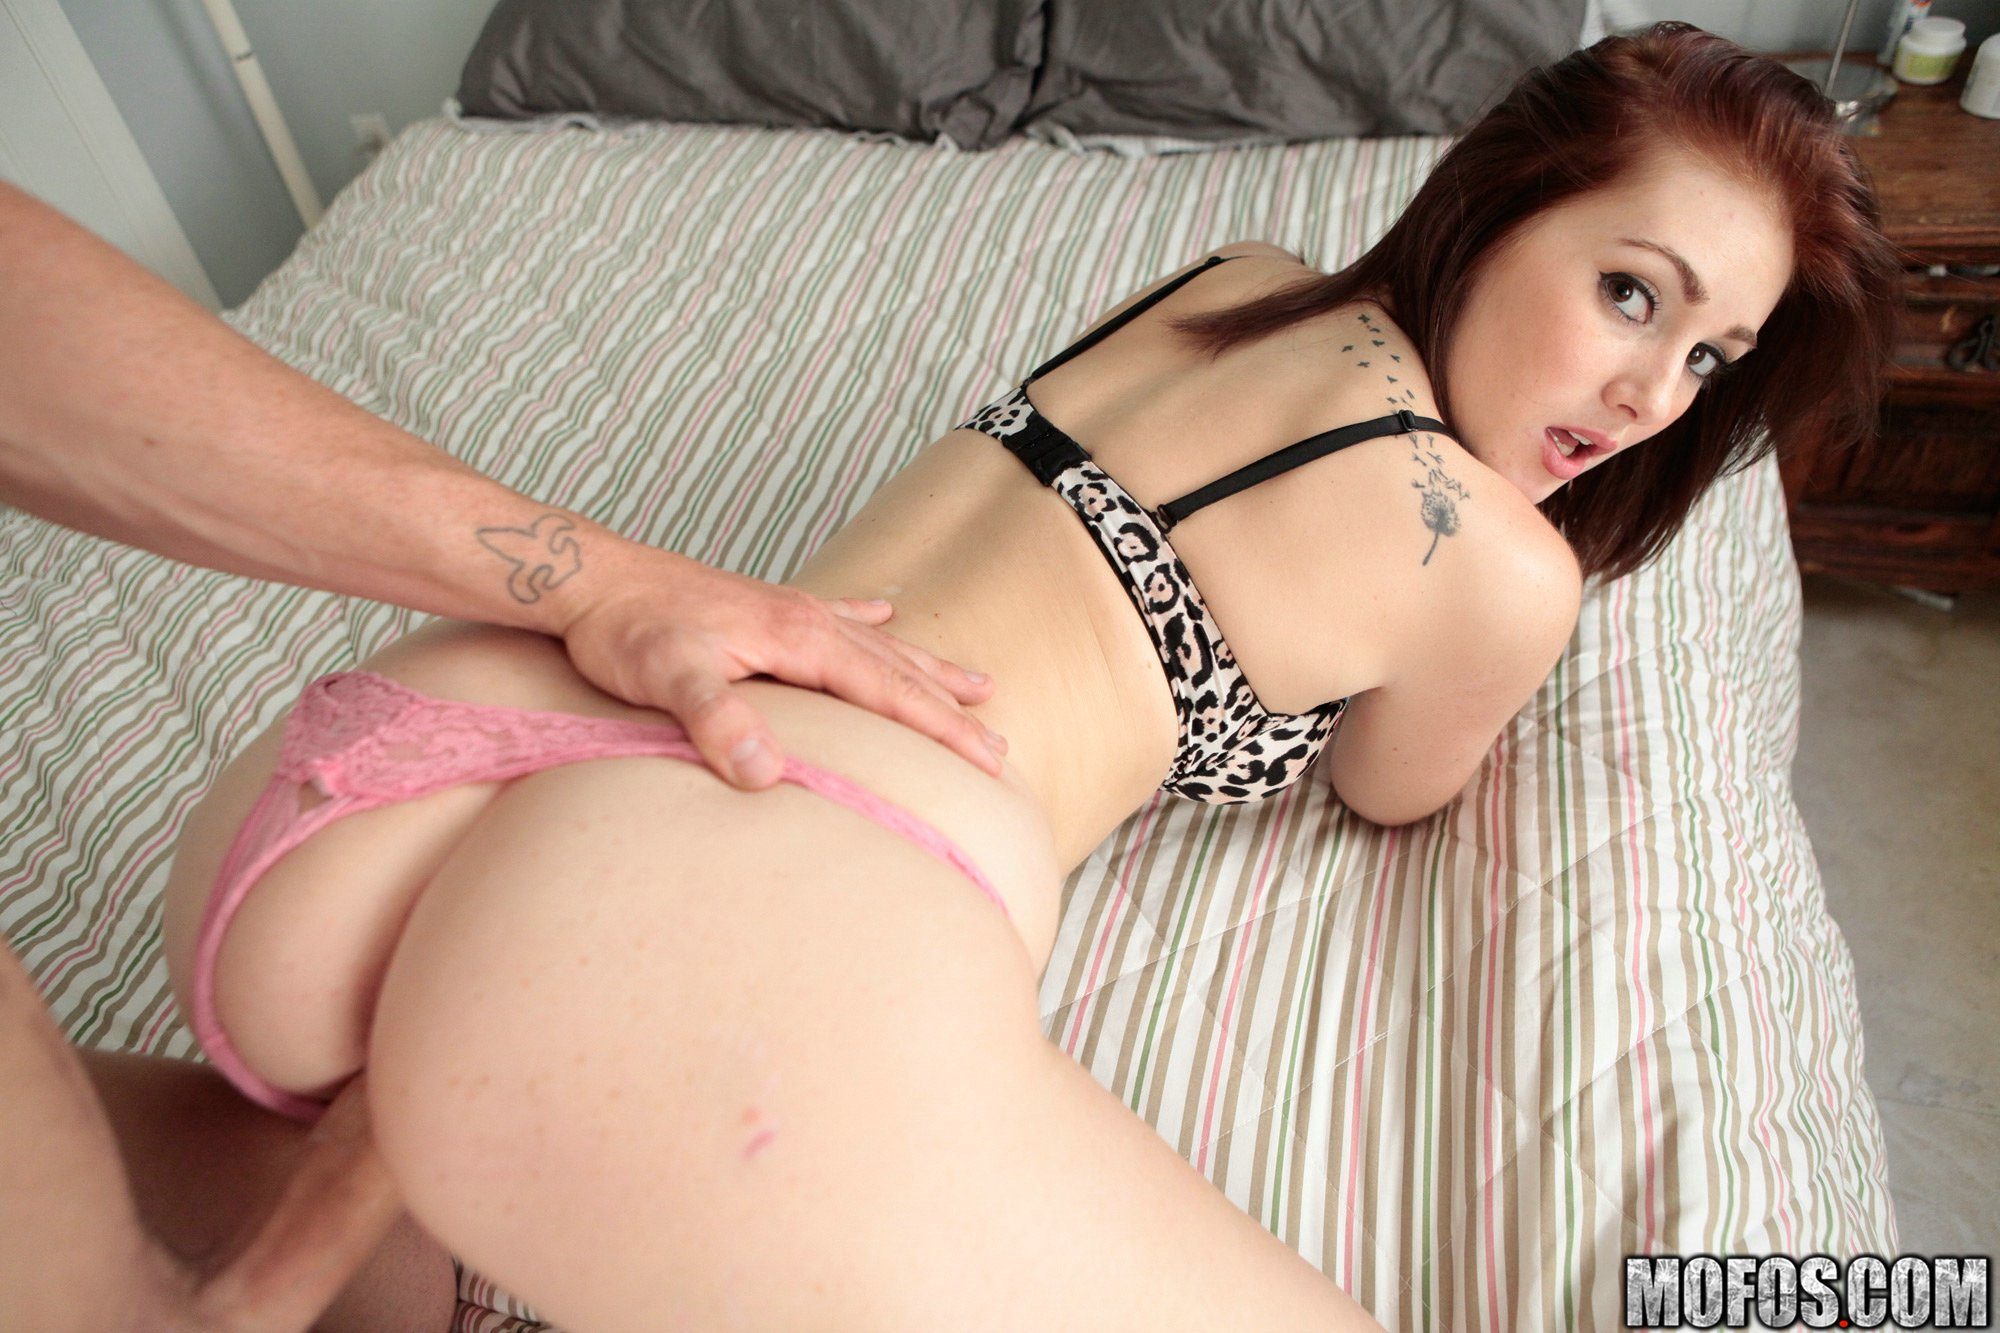 Alby style gets fucked - 1 8